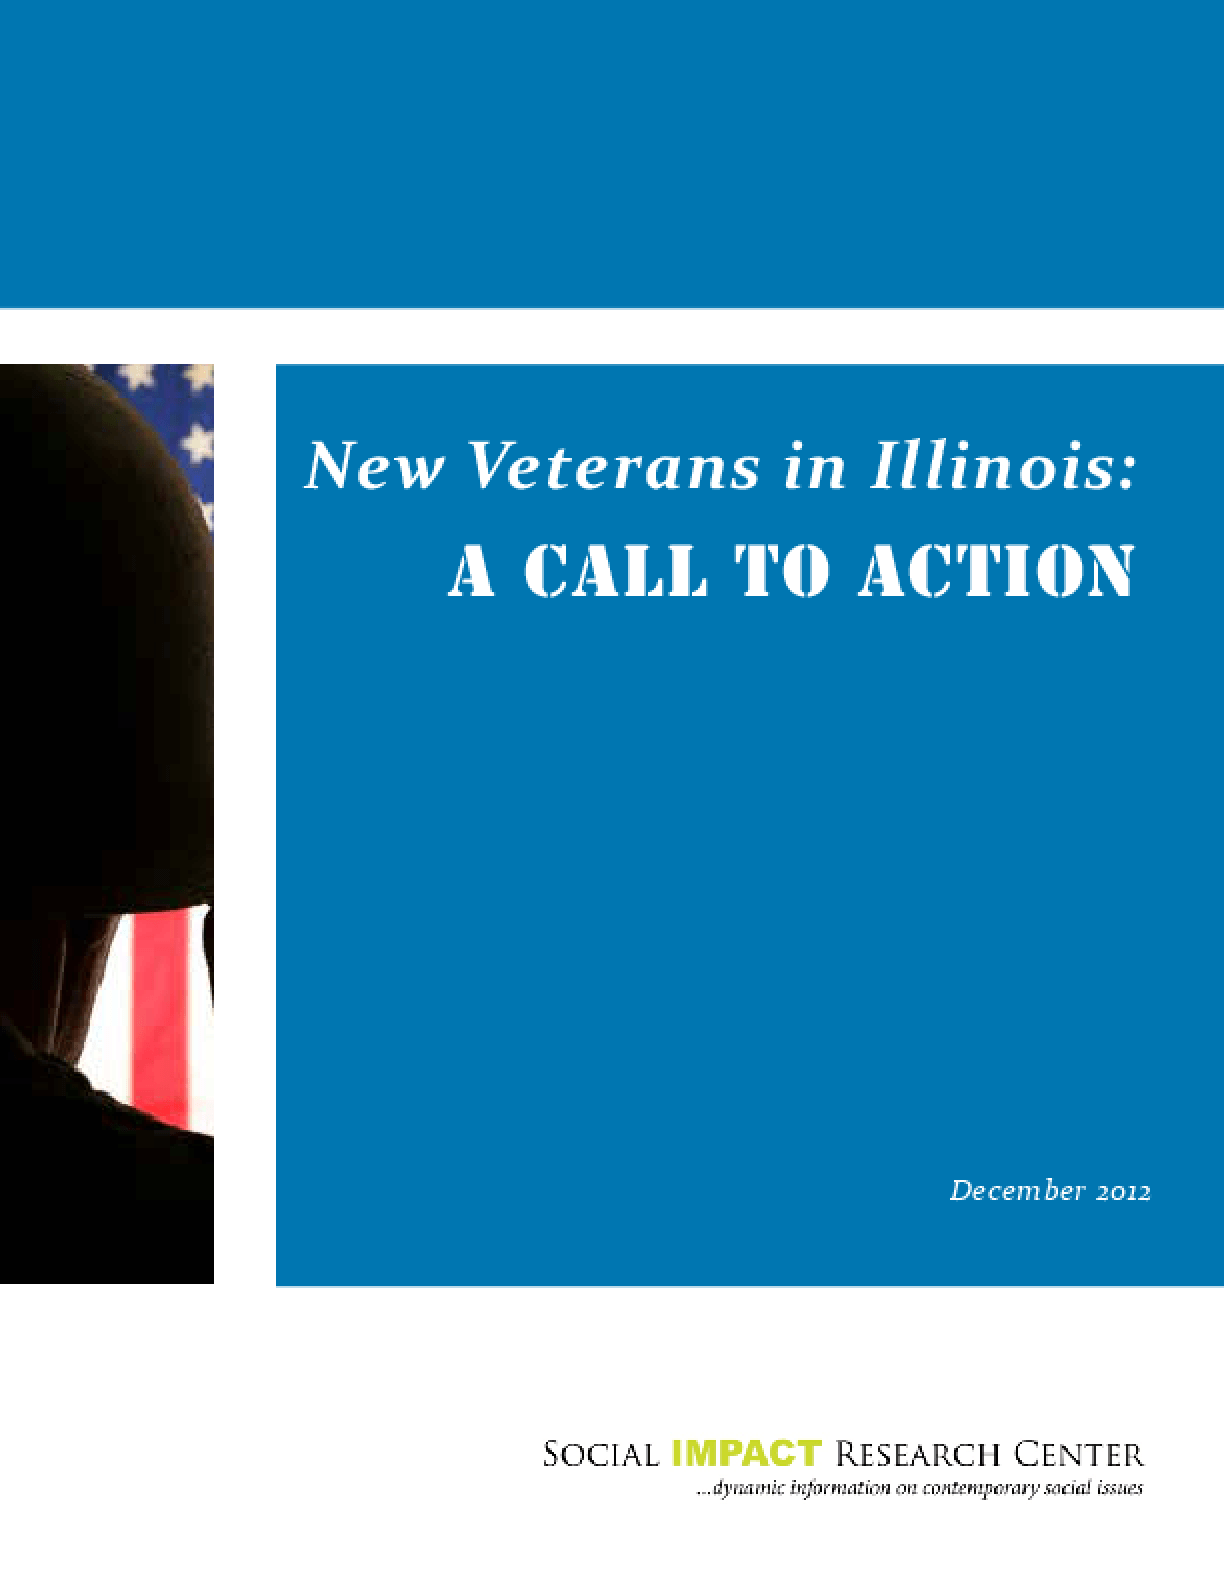 New Veterans in Illinois: A Call to Action